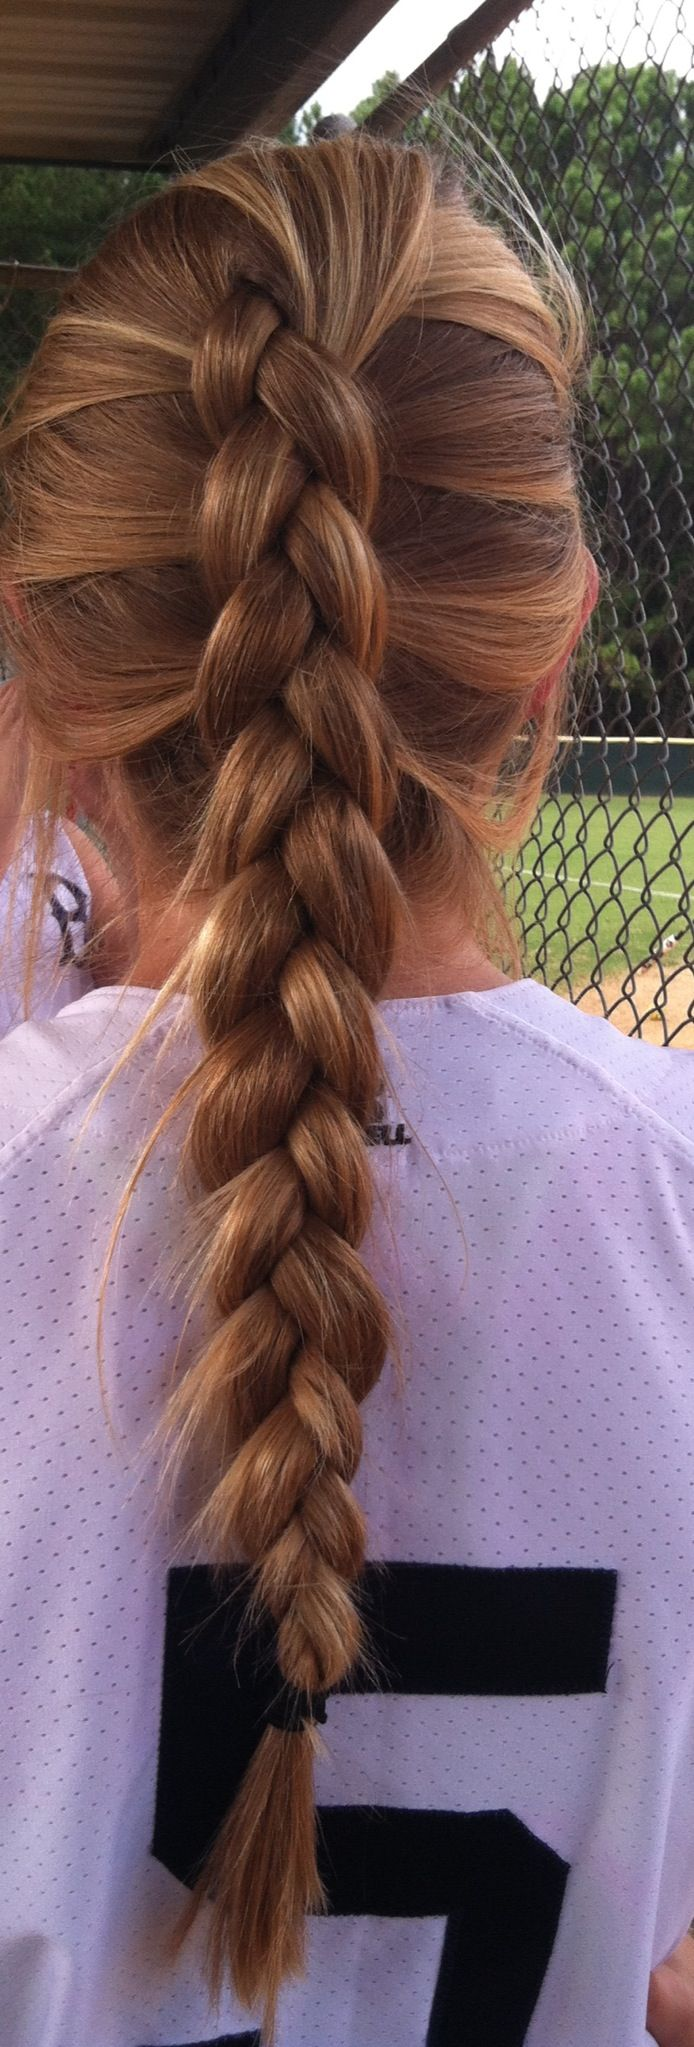 Softball hair :) me except i have two braids and it takes forever...Thank you mom!